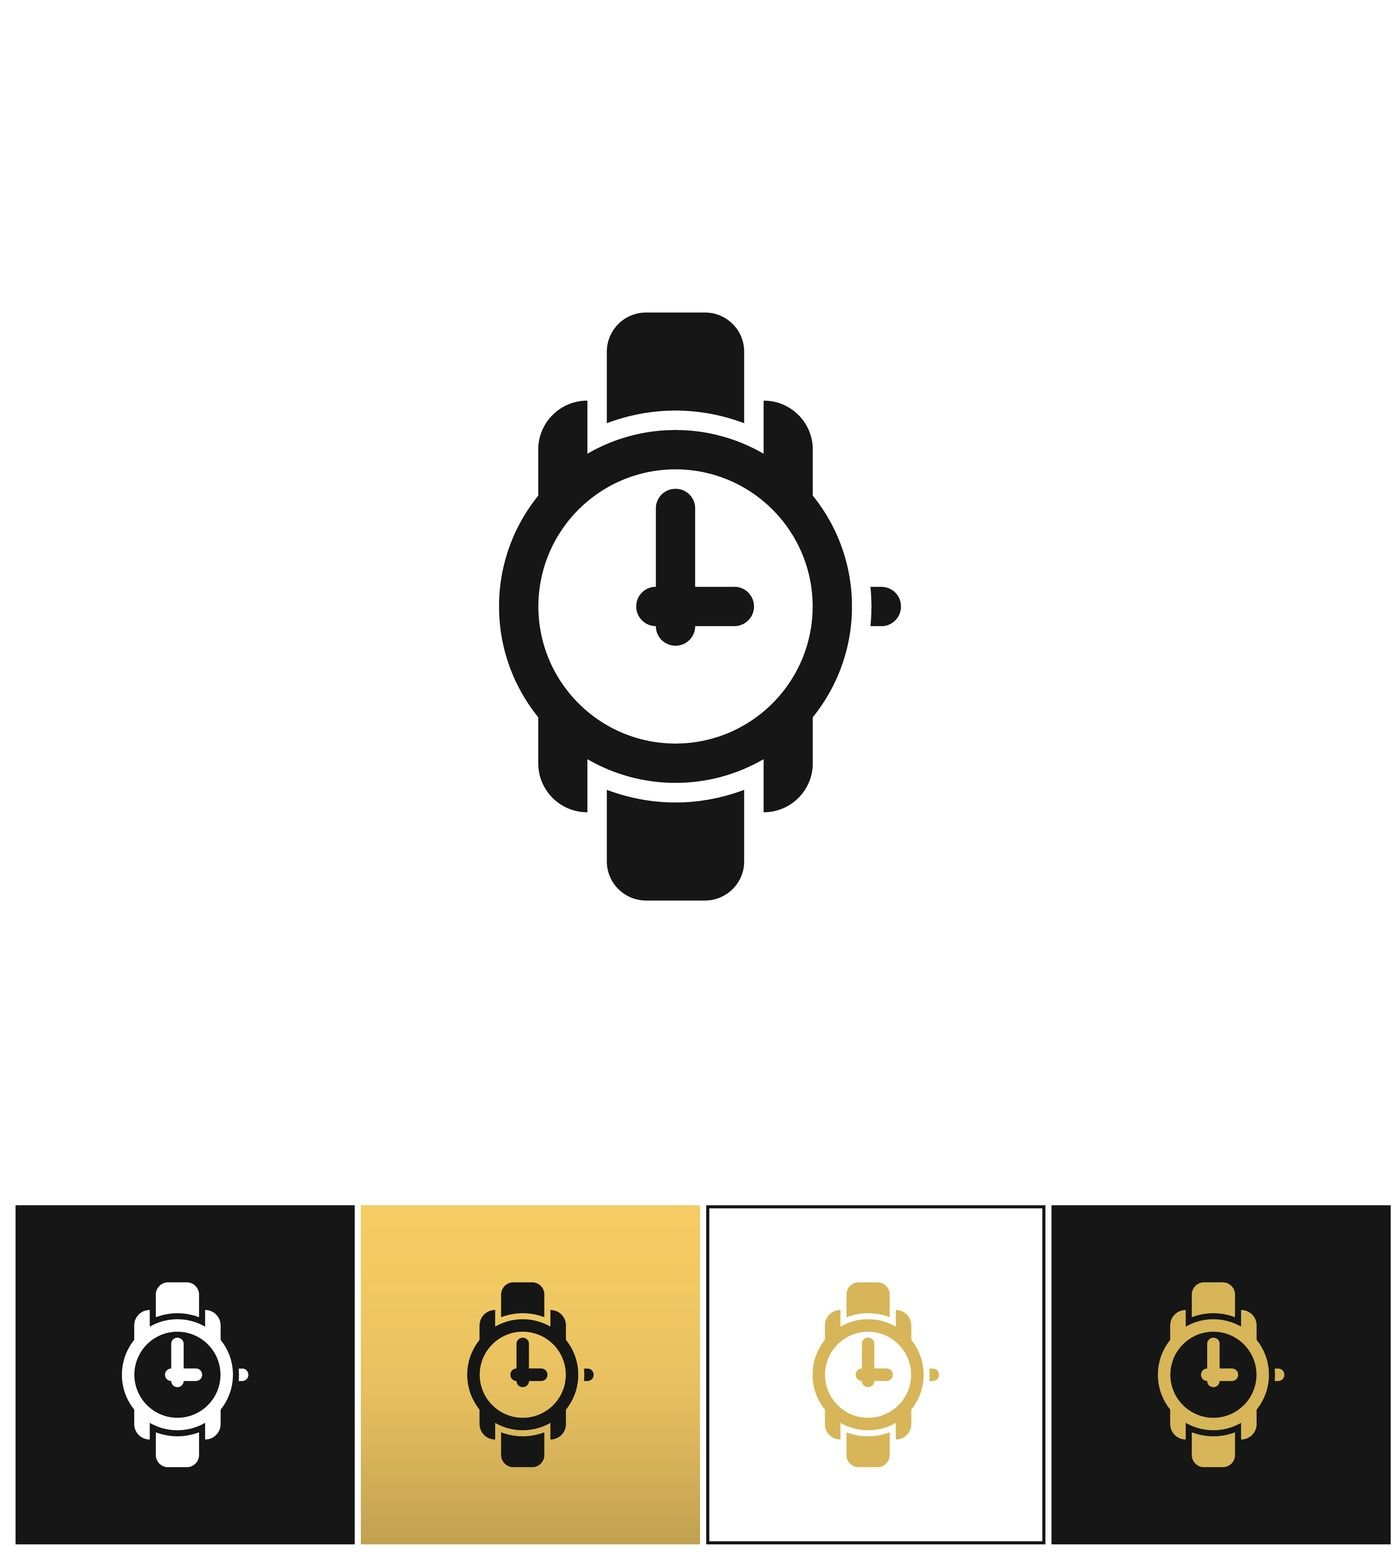 Wrist Watch Sign Or Wristwatch Vector Icon By Microvector